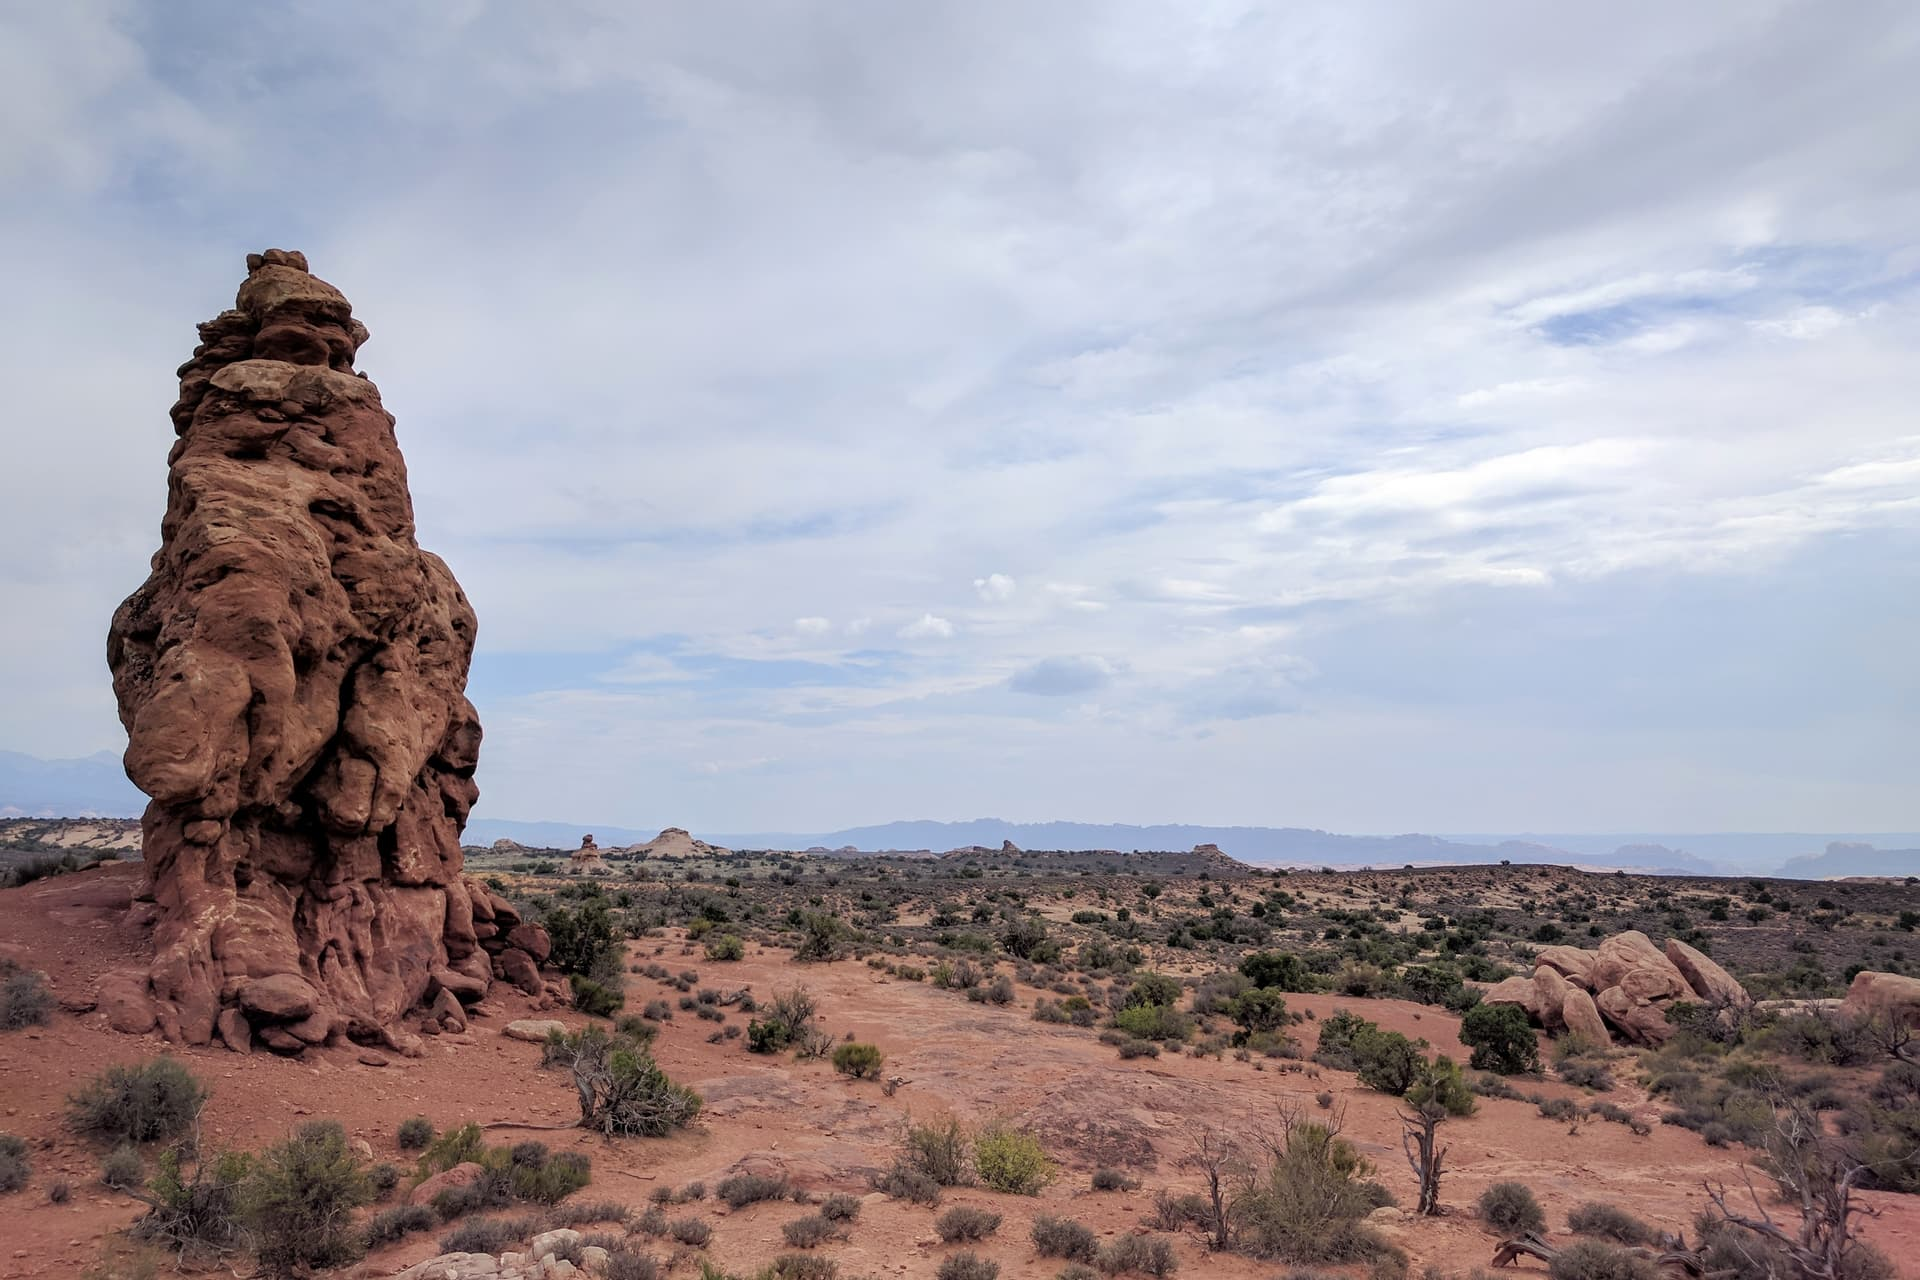 A lone pillar of red sandstone emerges from the desert ground in Arches National Park.